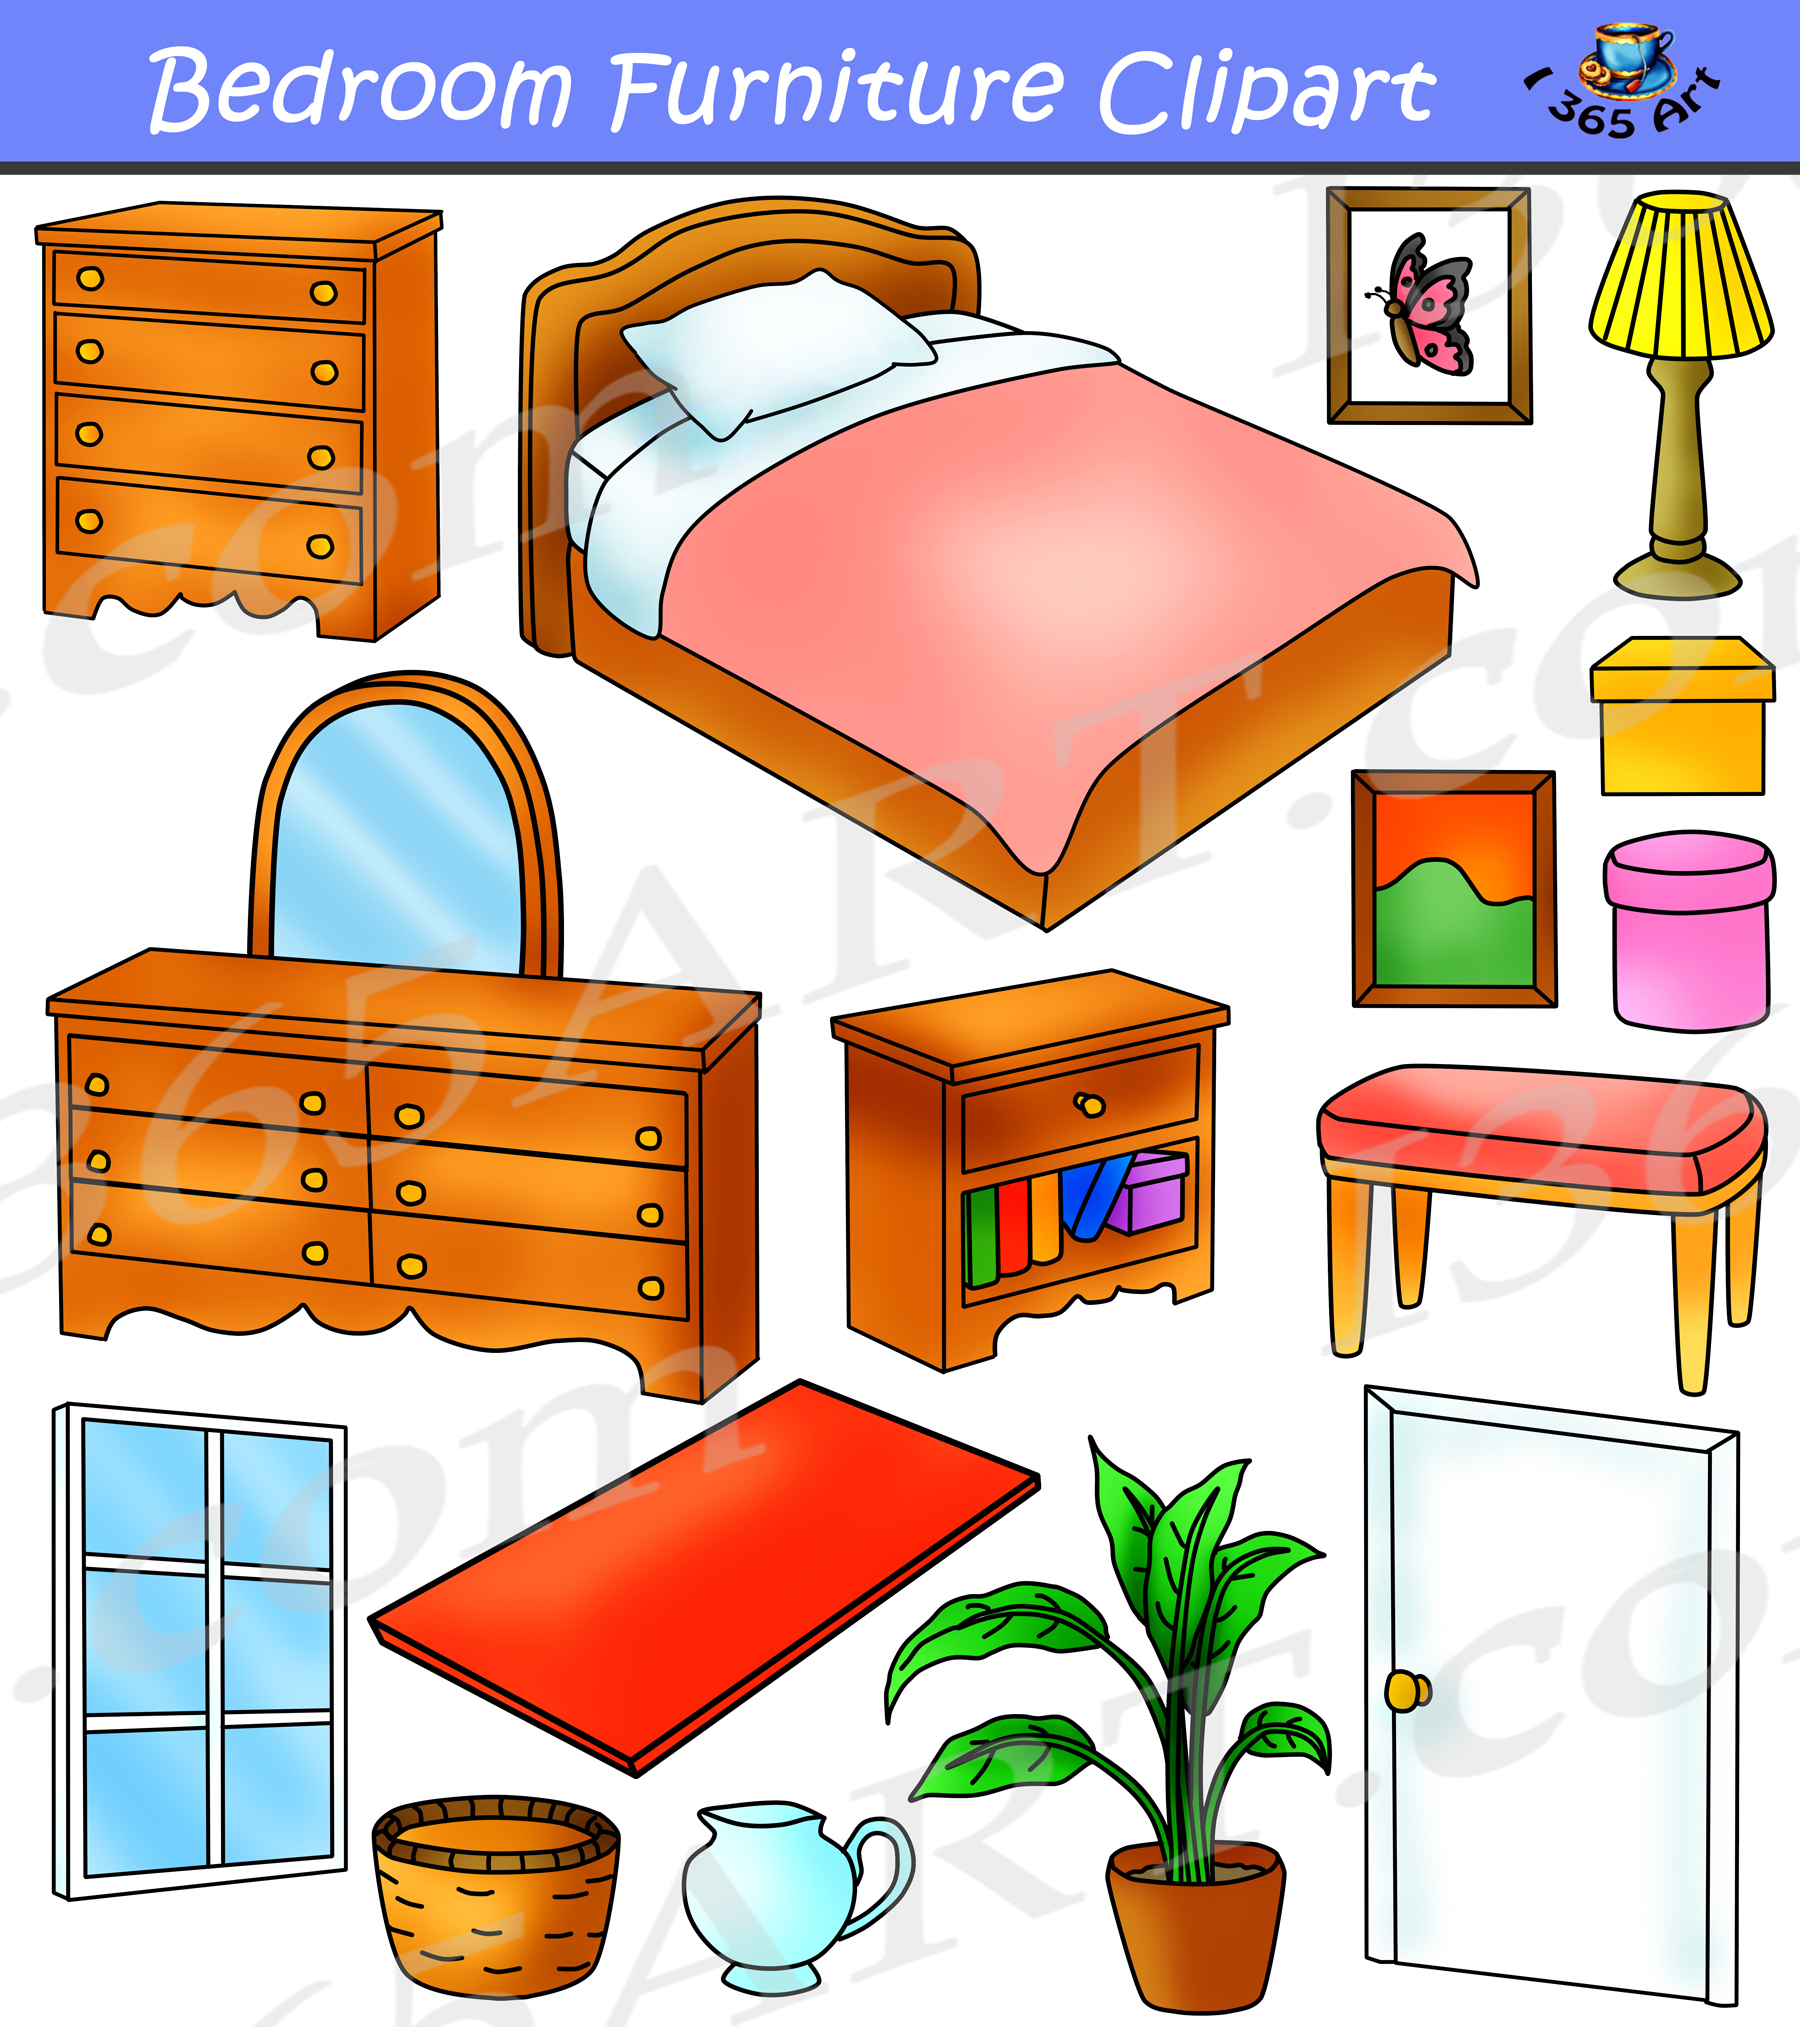 Furniture clipart. Bedroom home graphics commercial